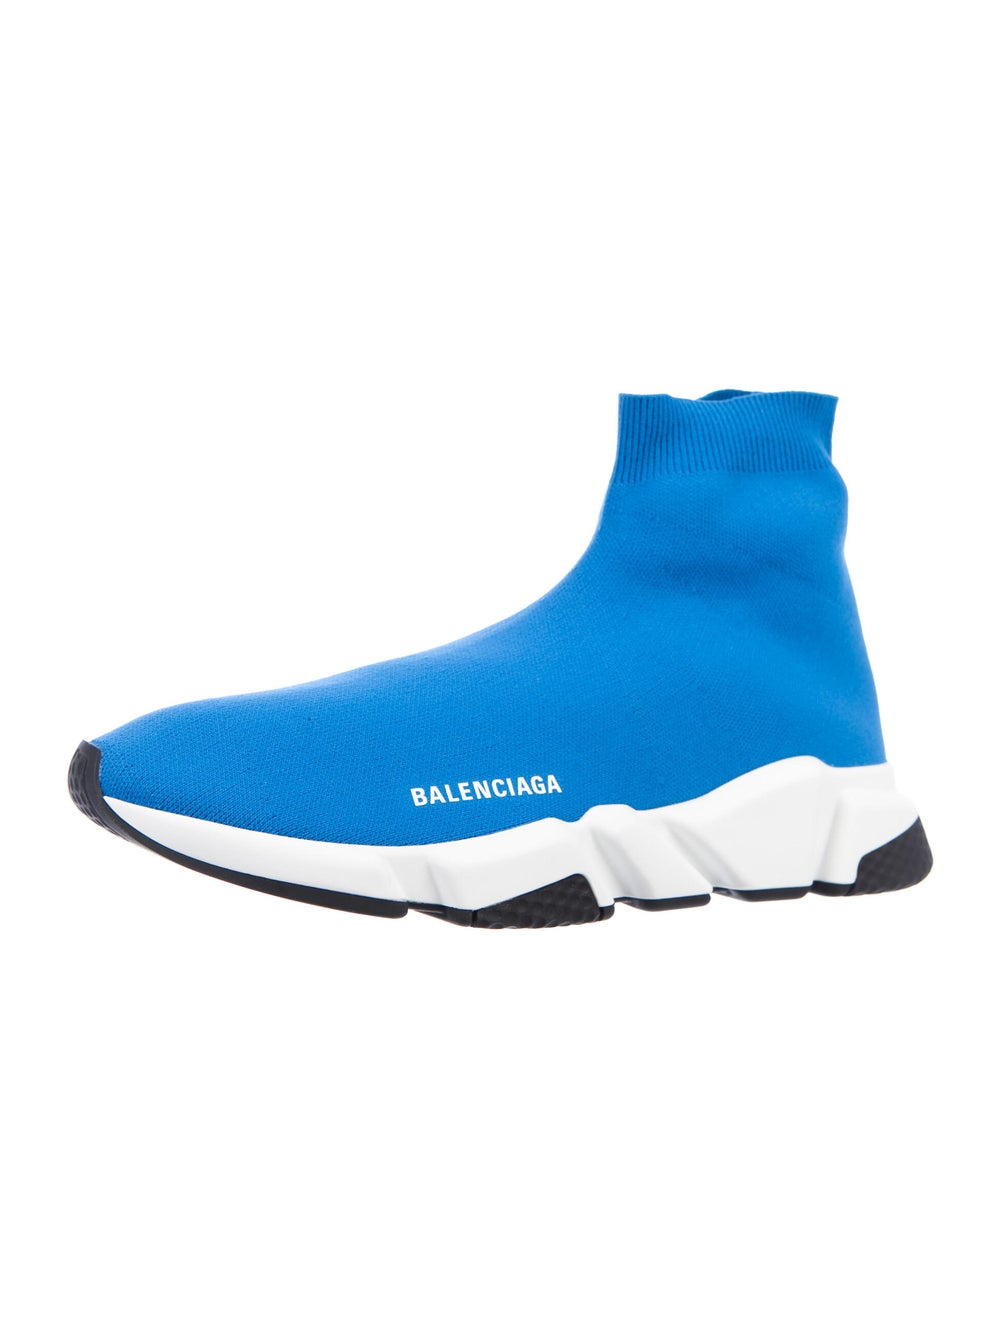 Balenciaga Speed Trainers Sneakers Blue - image 2